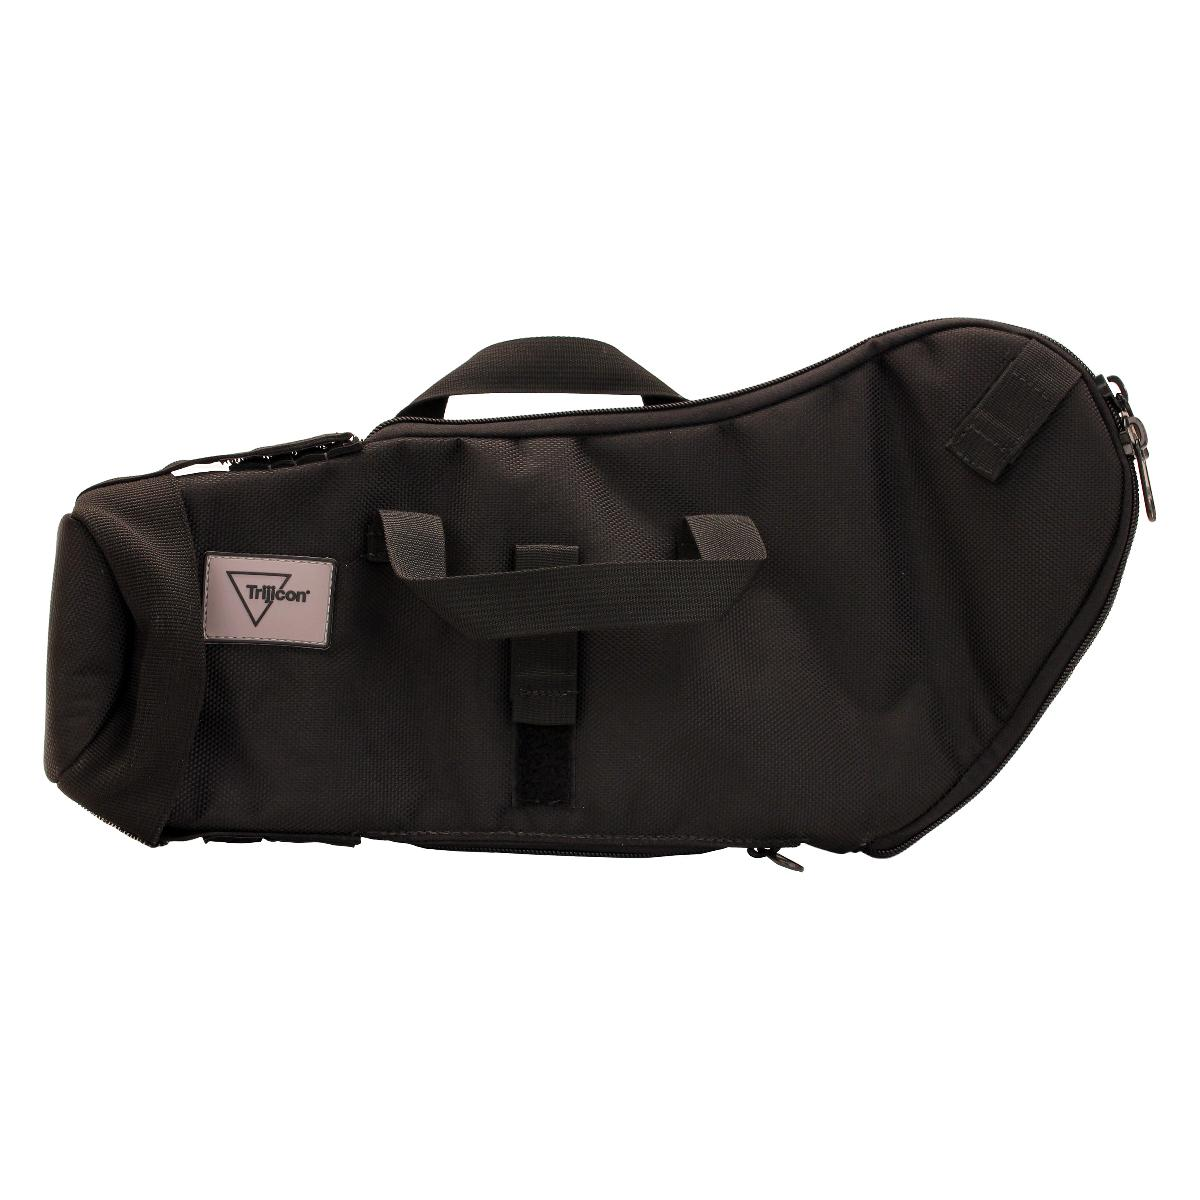 Trijicon Trijicon HD Spotting Scope Case (Trijicon HD Spotting Scope Case) by Trijicon